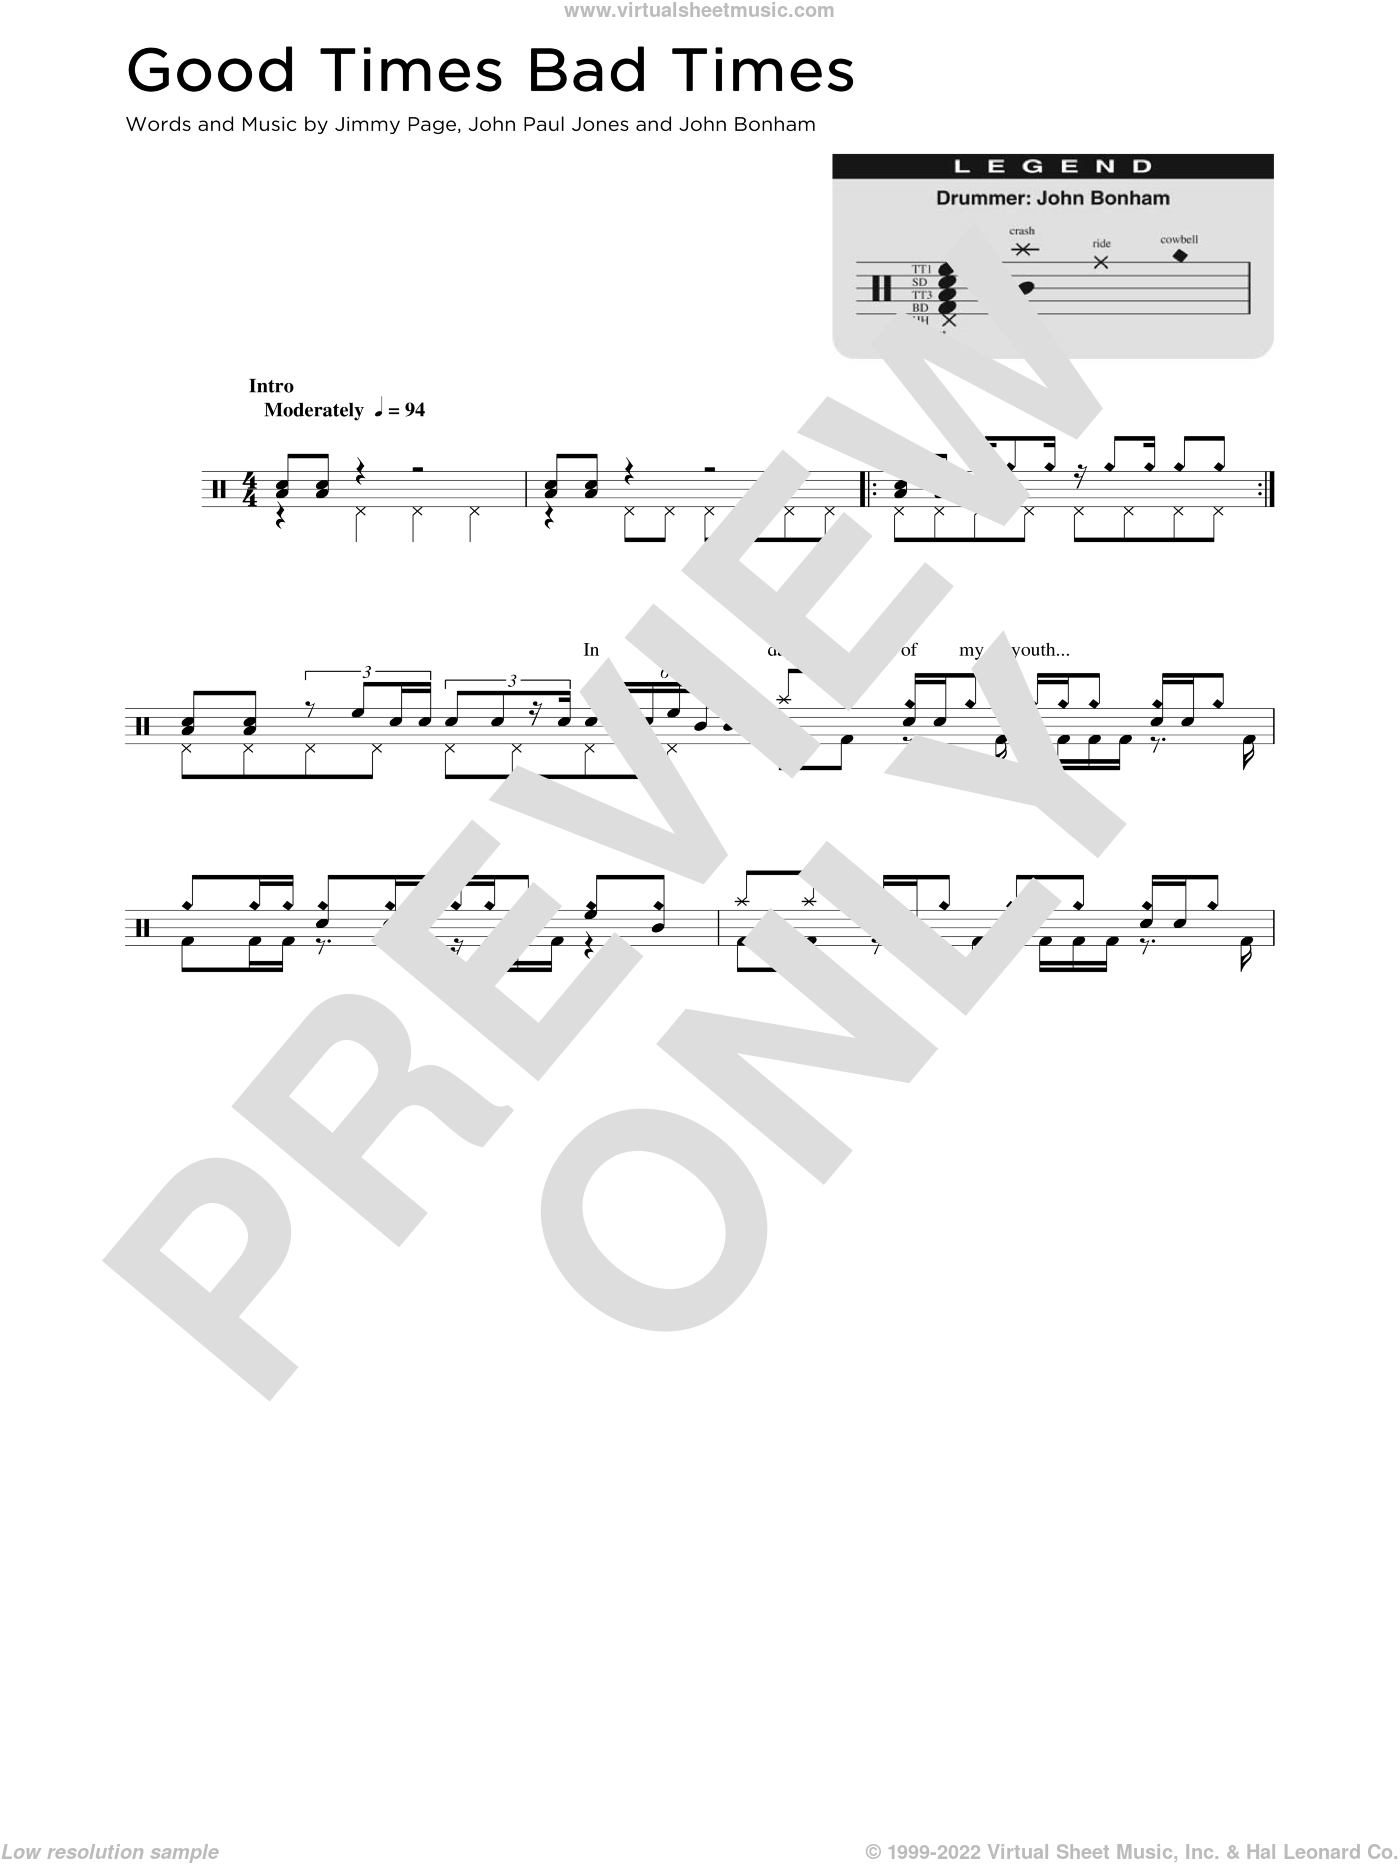 Good Times Bad Times sheet music for drums (percussions) by Led Zeppelin, Jimmy Page, John Bonham and John Paul Jones, intermediate skill level